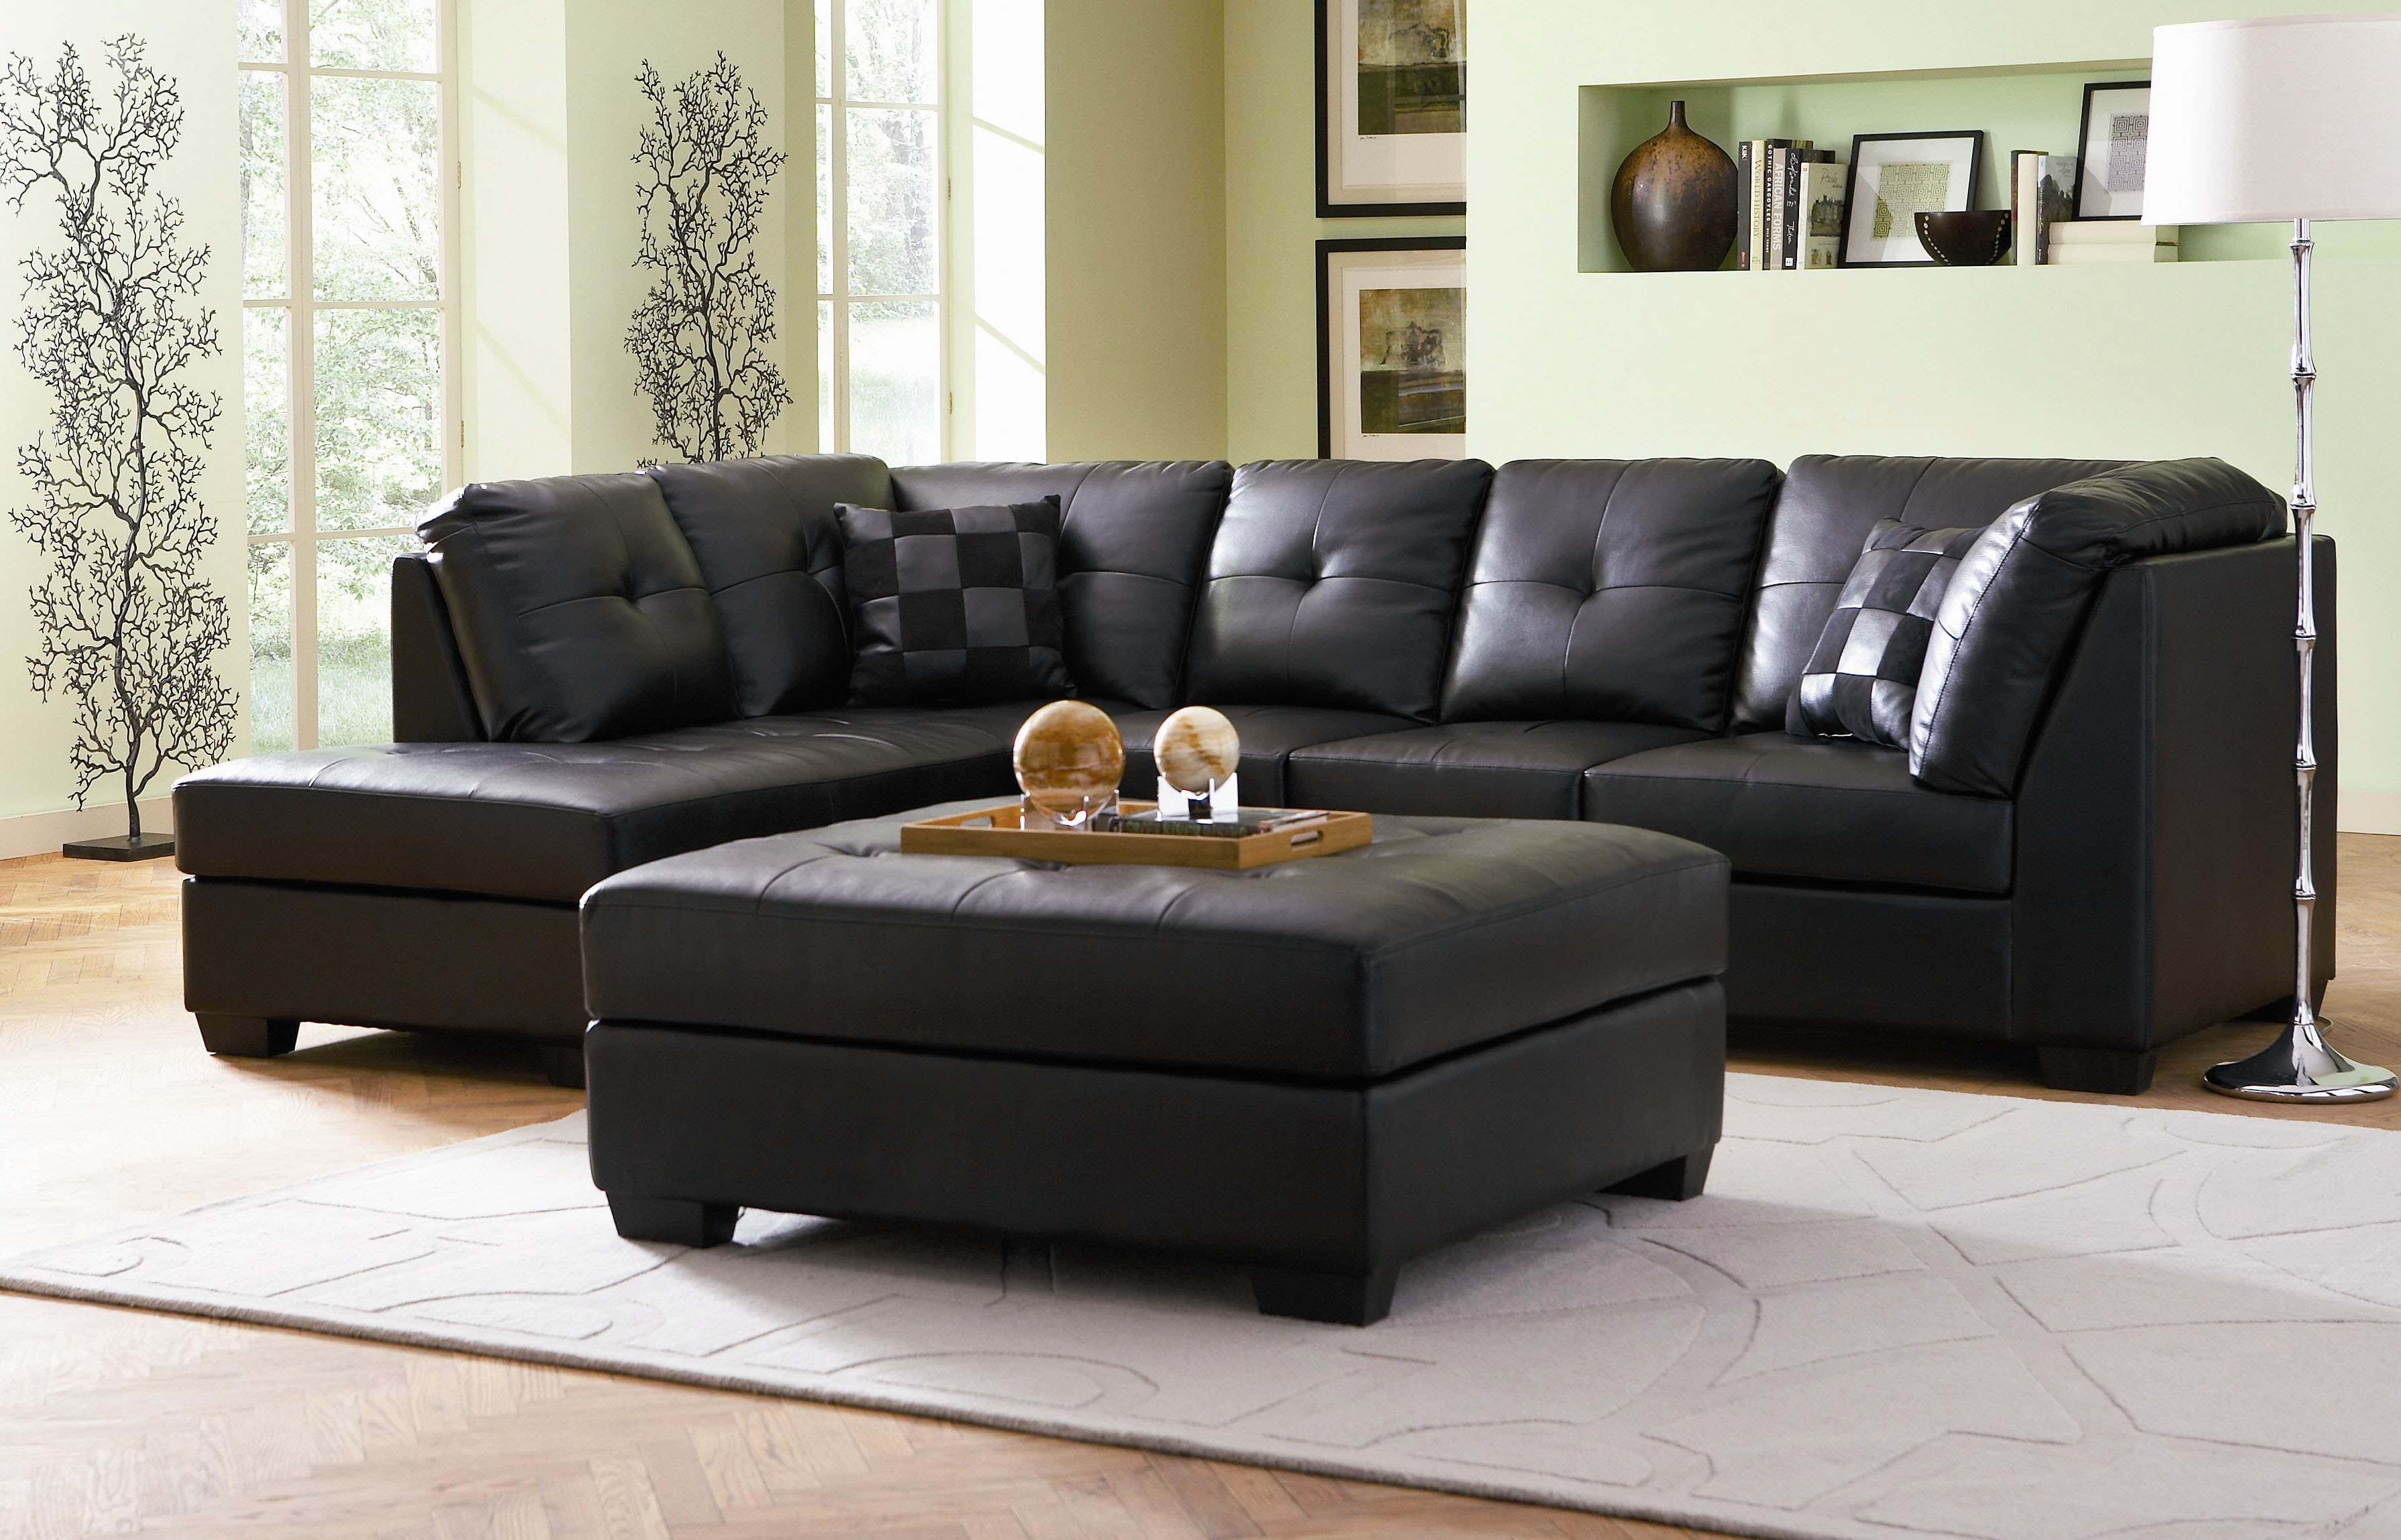 Furniture Rug U Shaped Sectional Sofa Discount Sofas Cheap